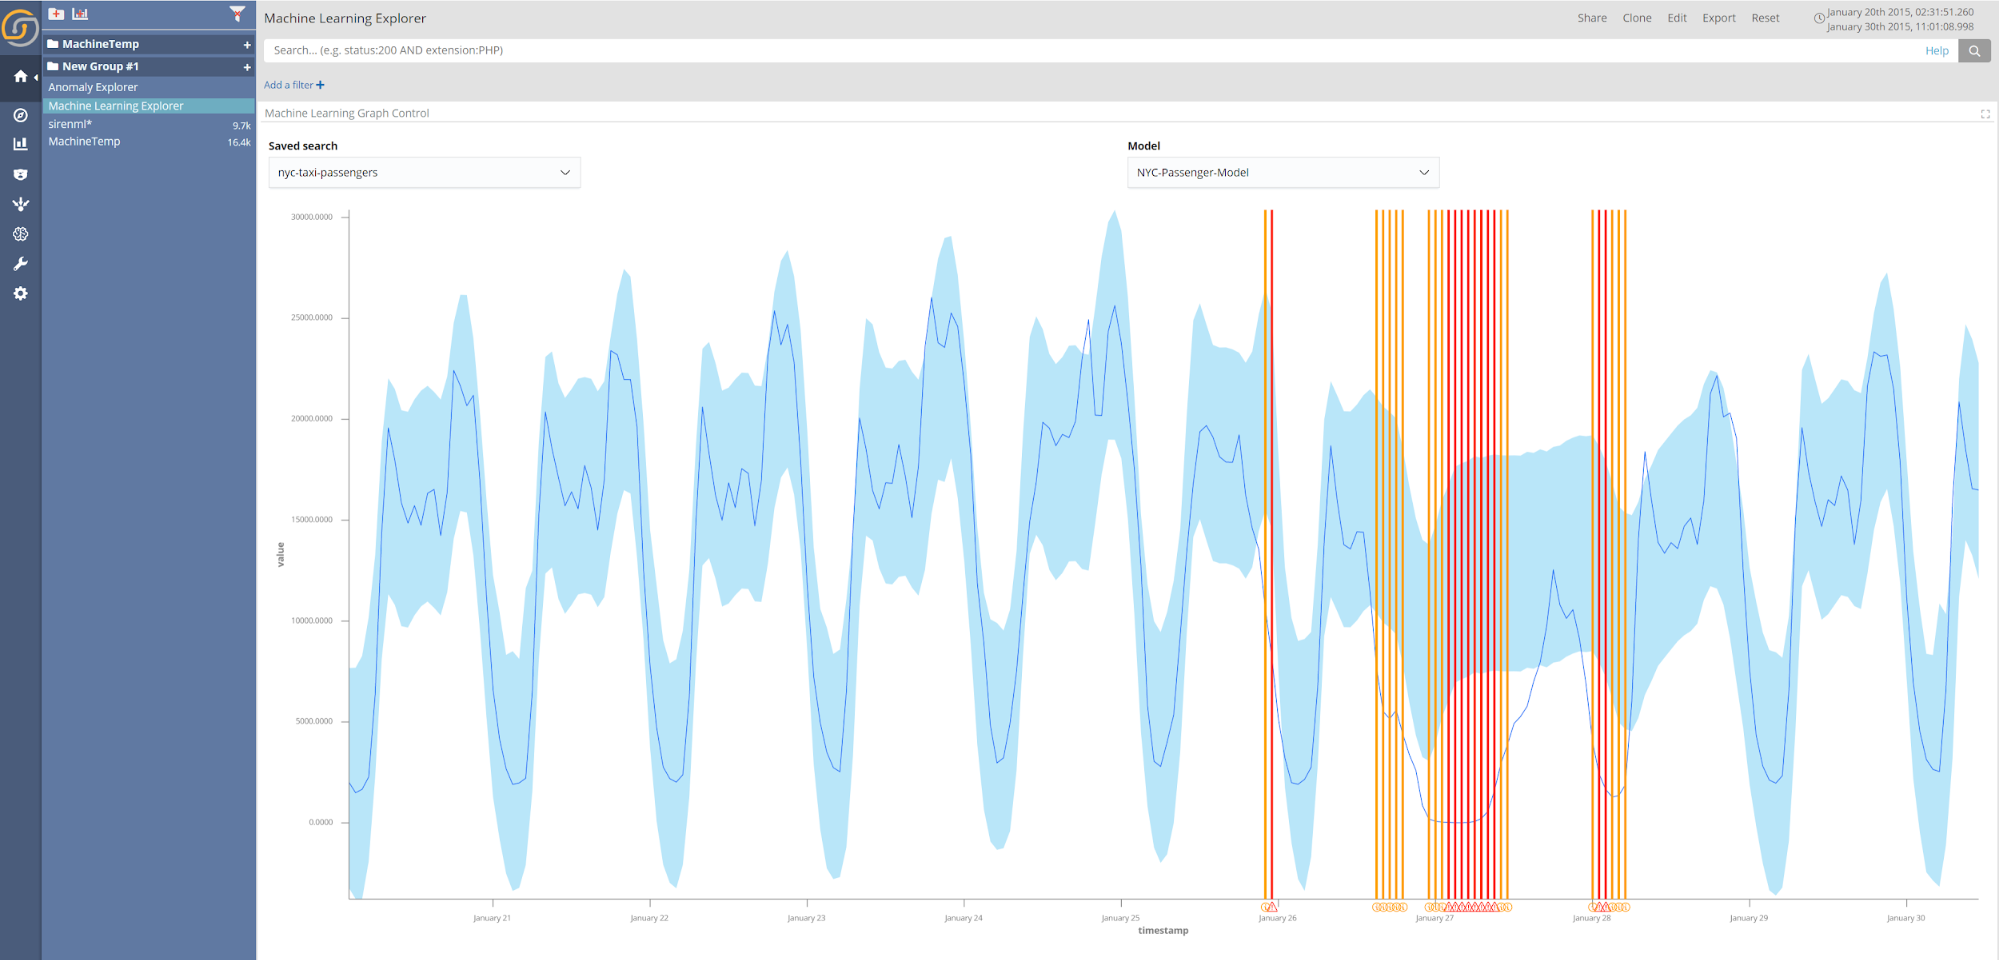 Siren ML - Anomaly detection example NYC taxi passenger usage